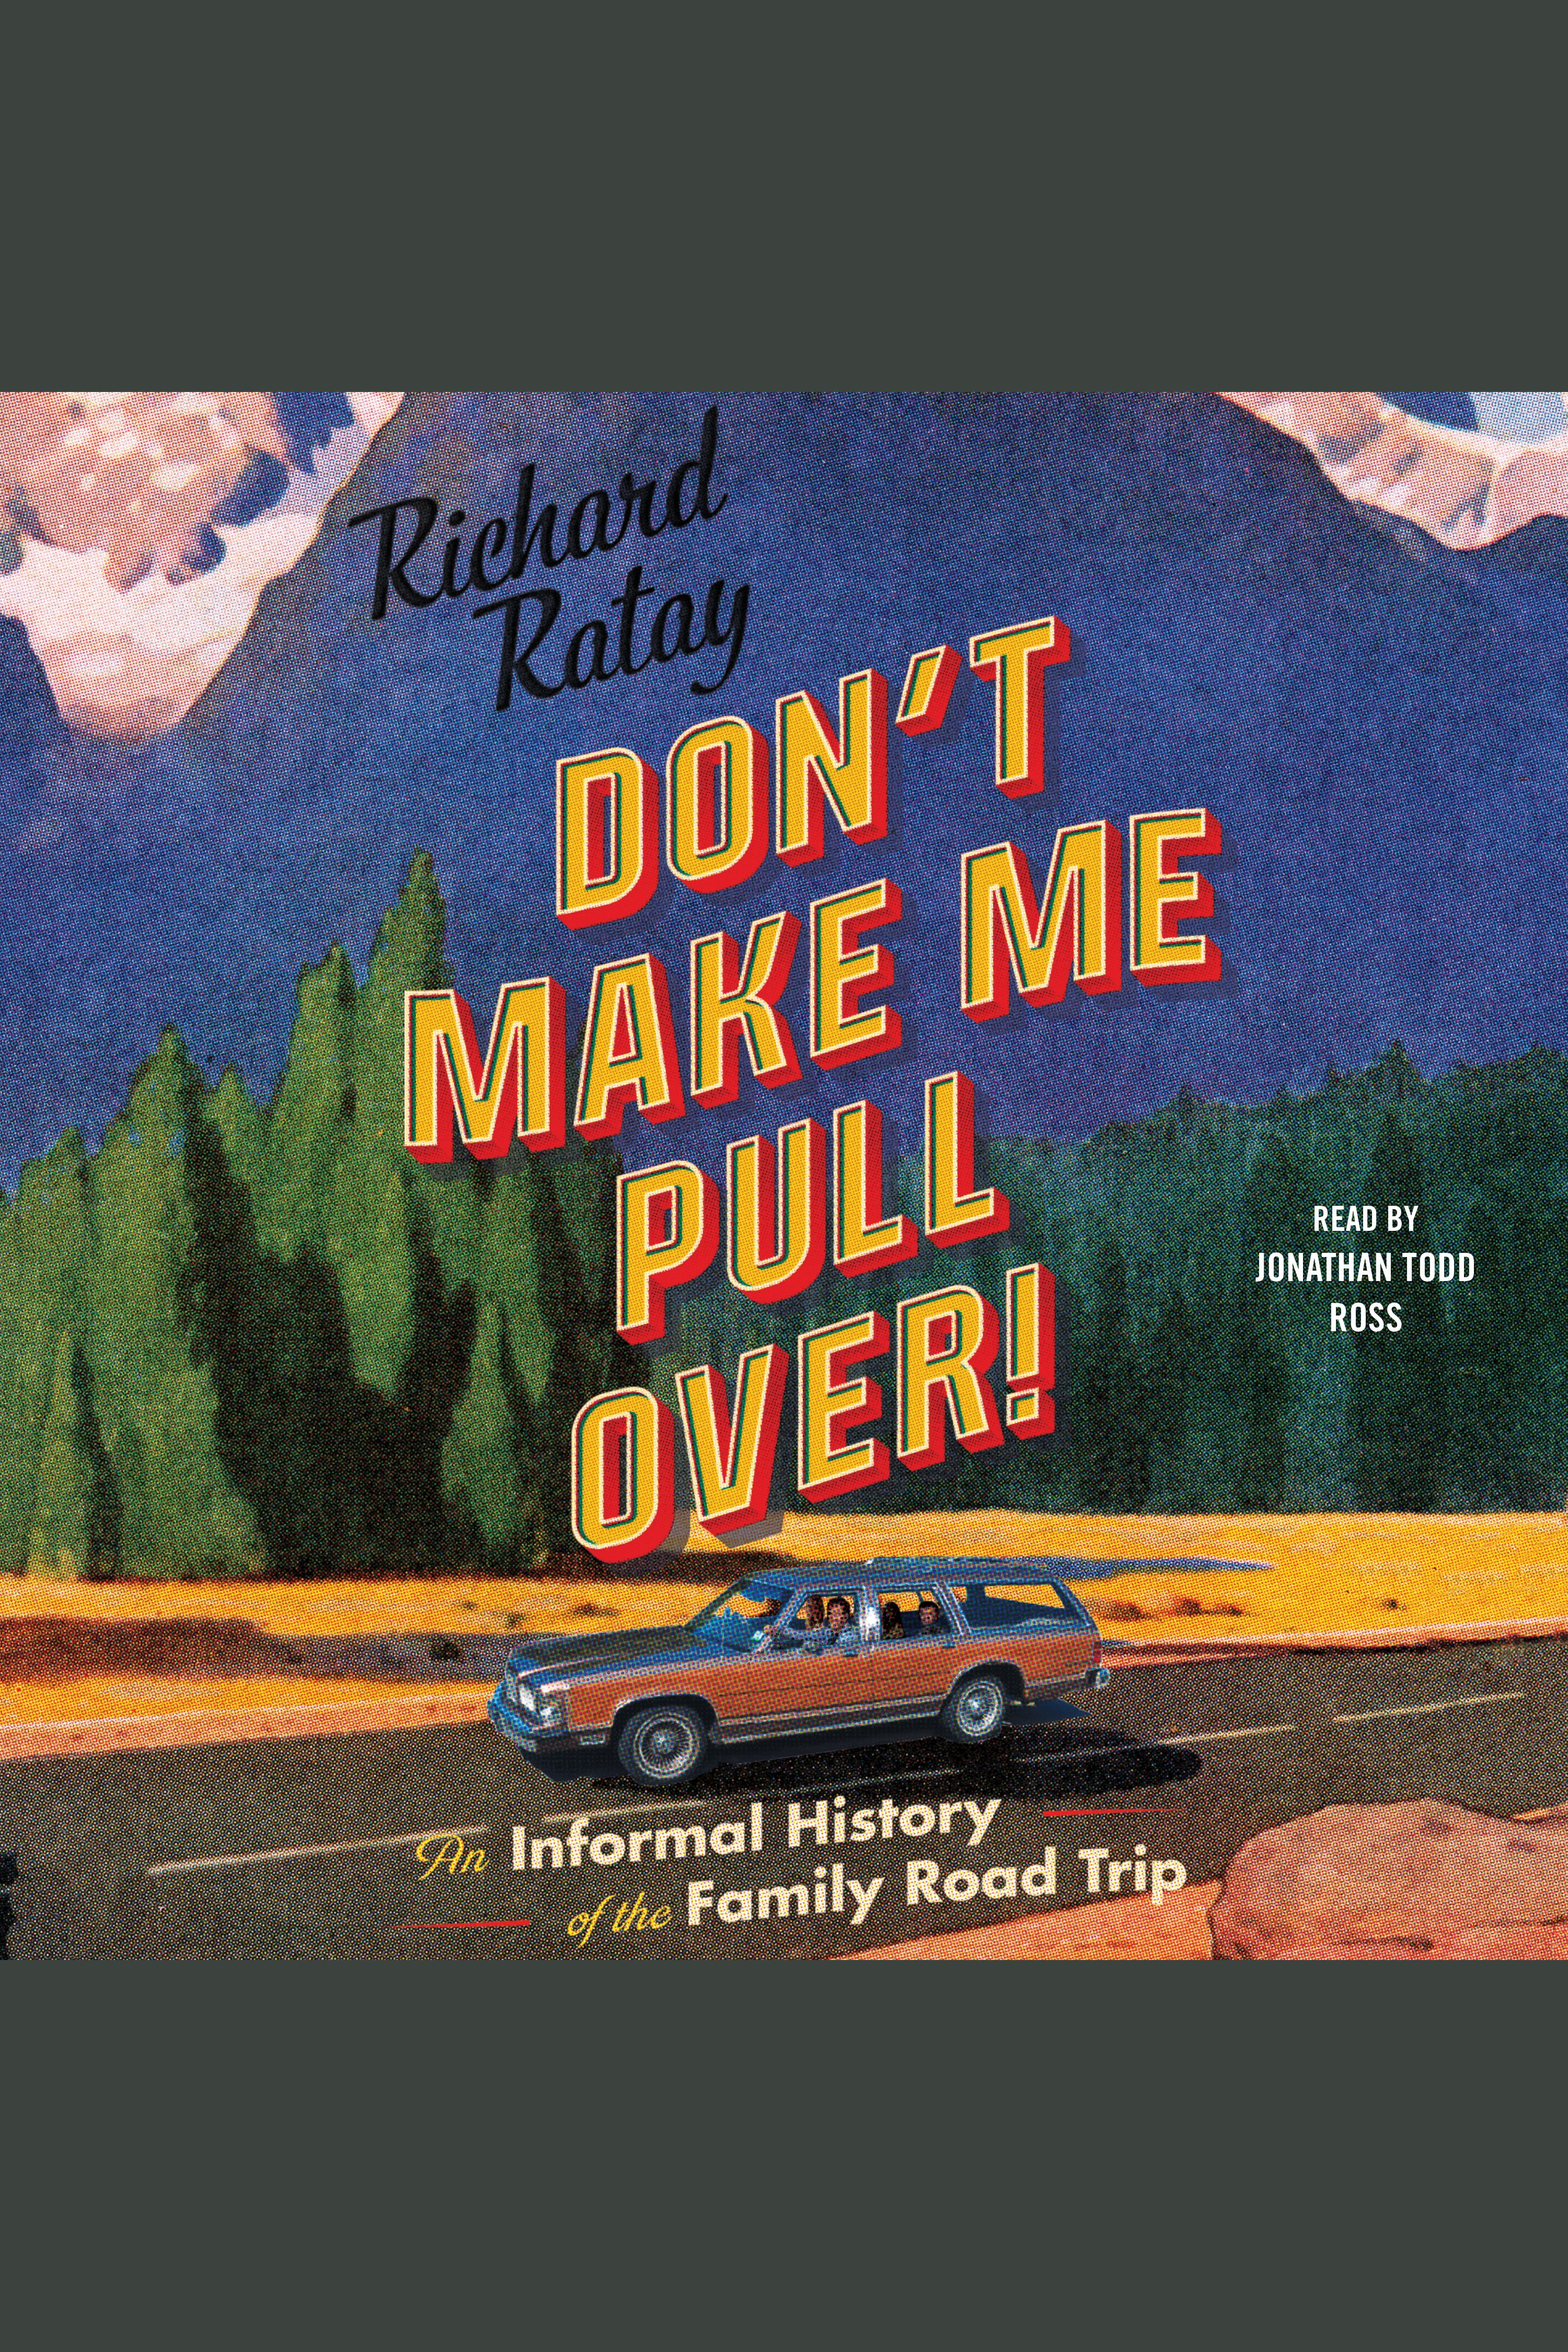 Don't Make Me Pull Over! An Informal History of the Family Road Trip